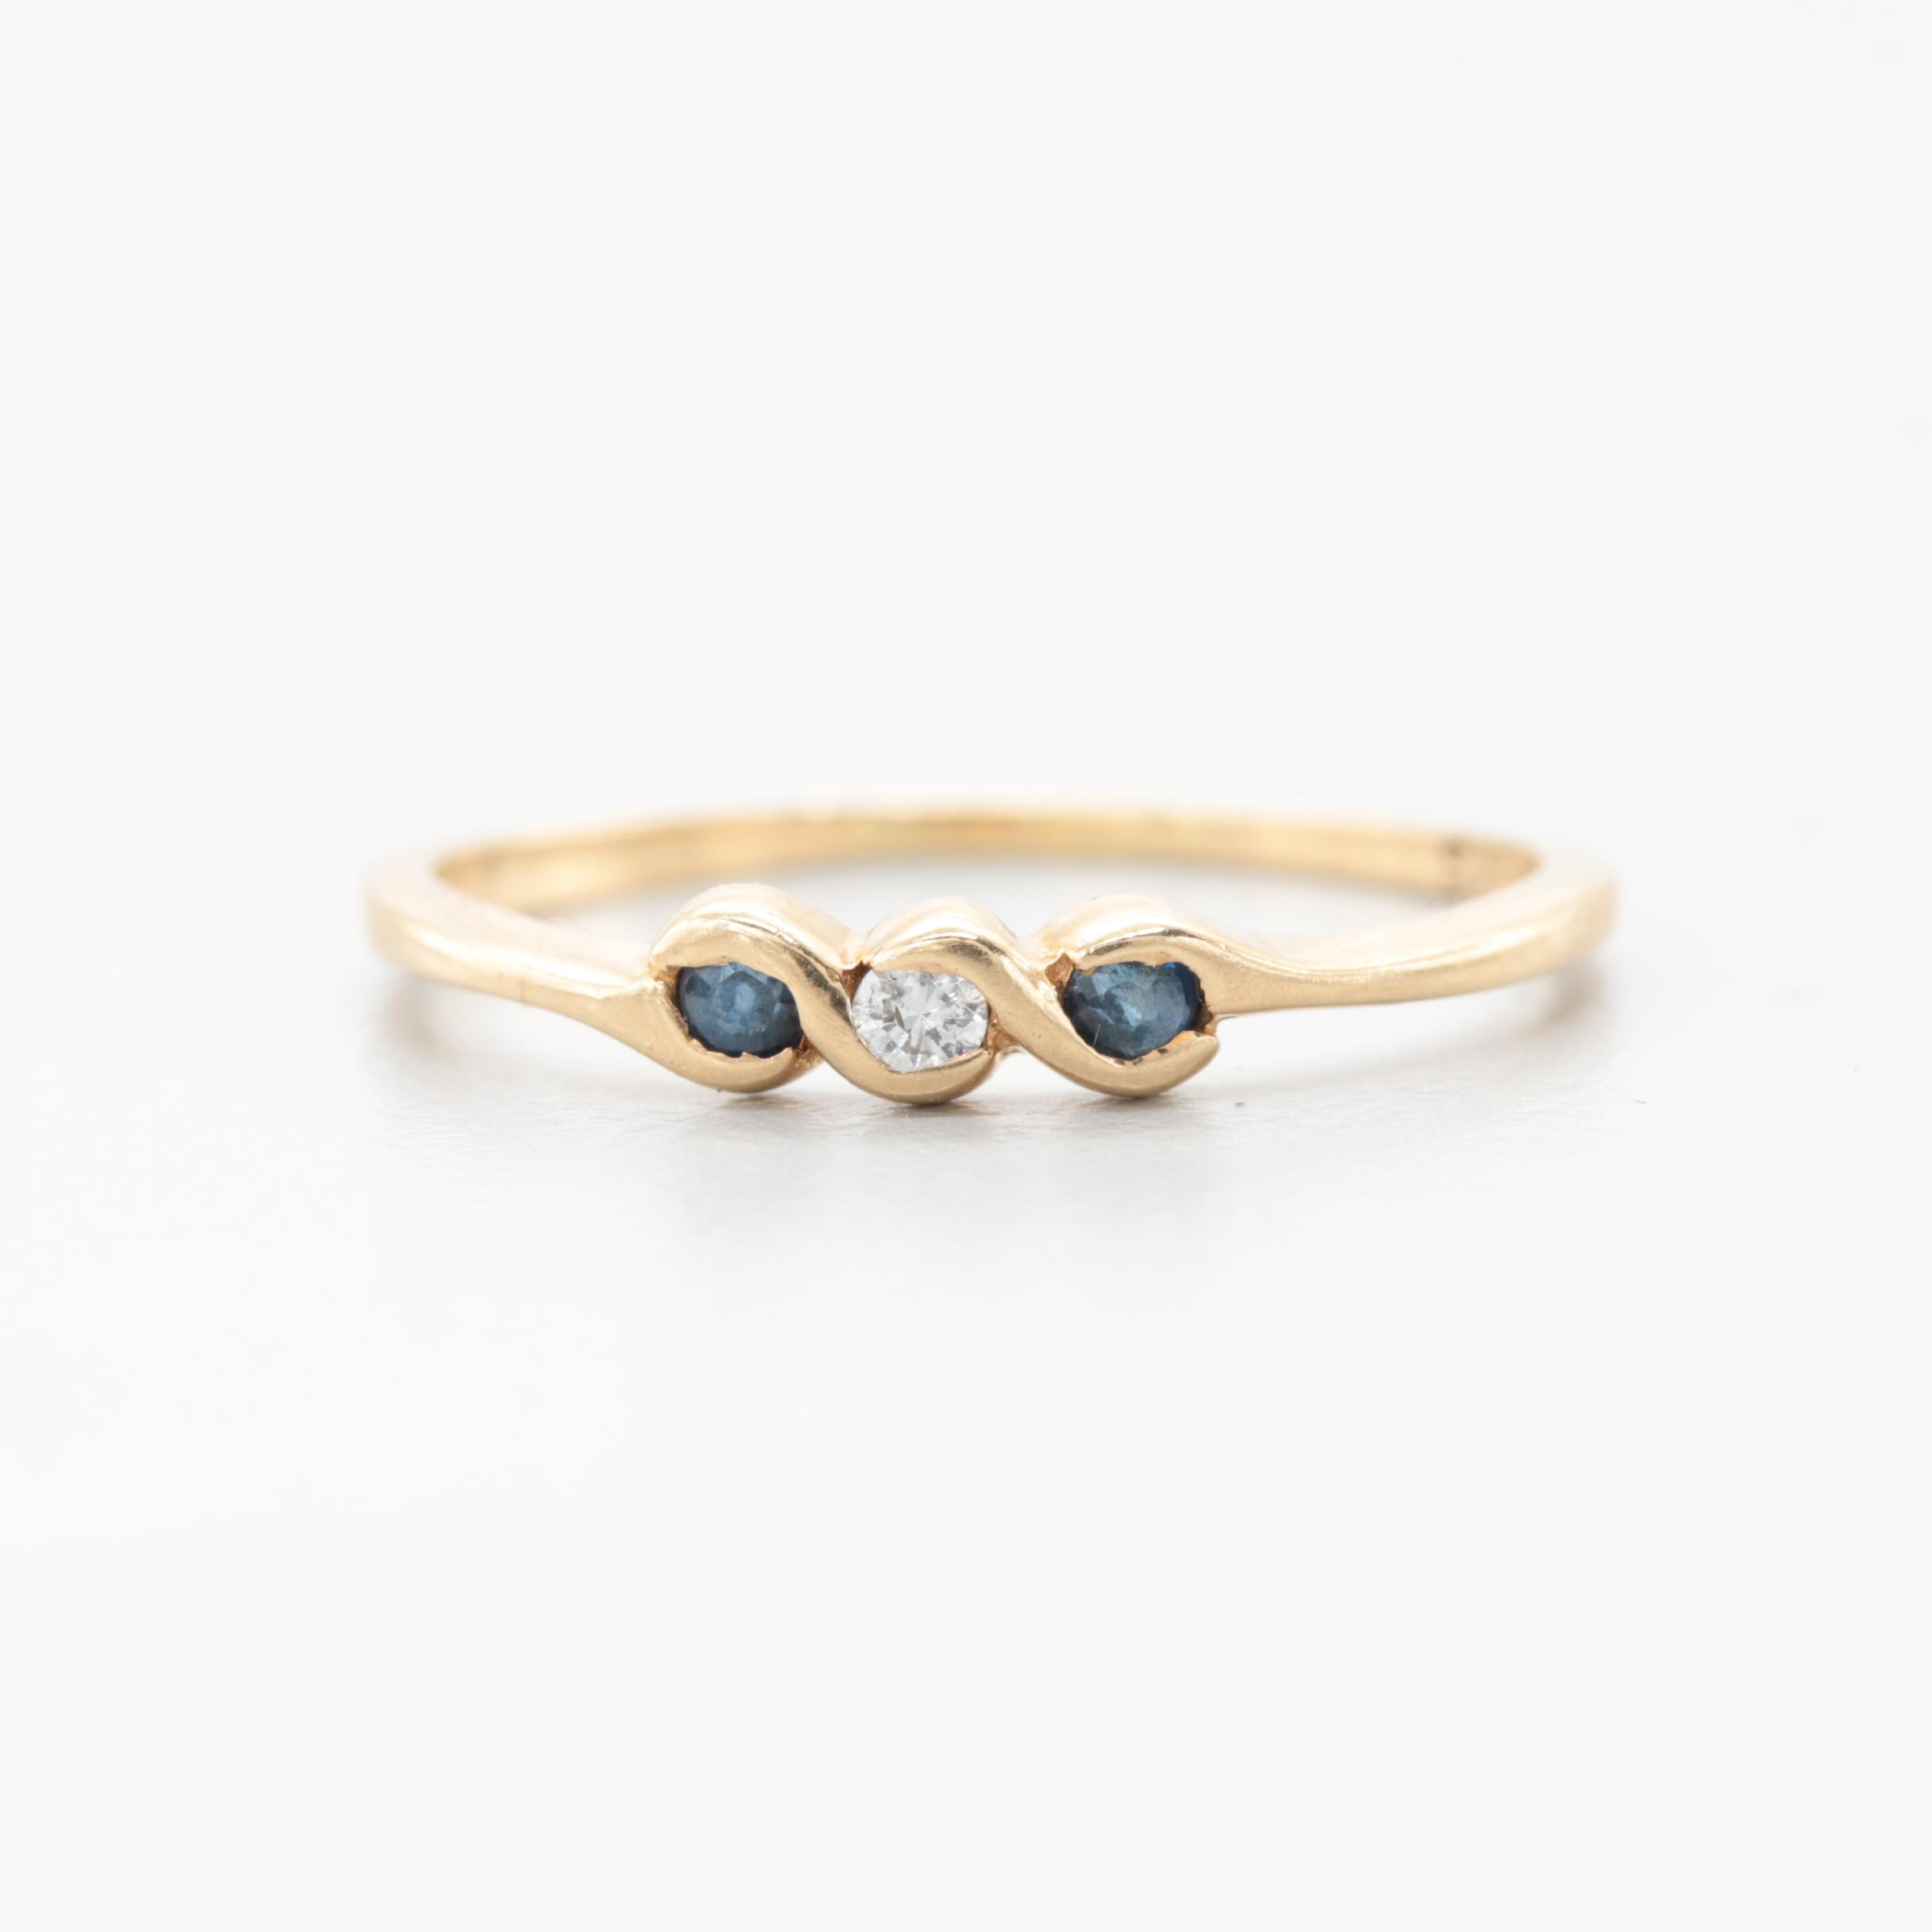 10K Yellow Gold Diamond and Blue Sapphire Ring